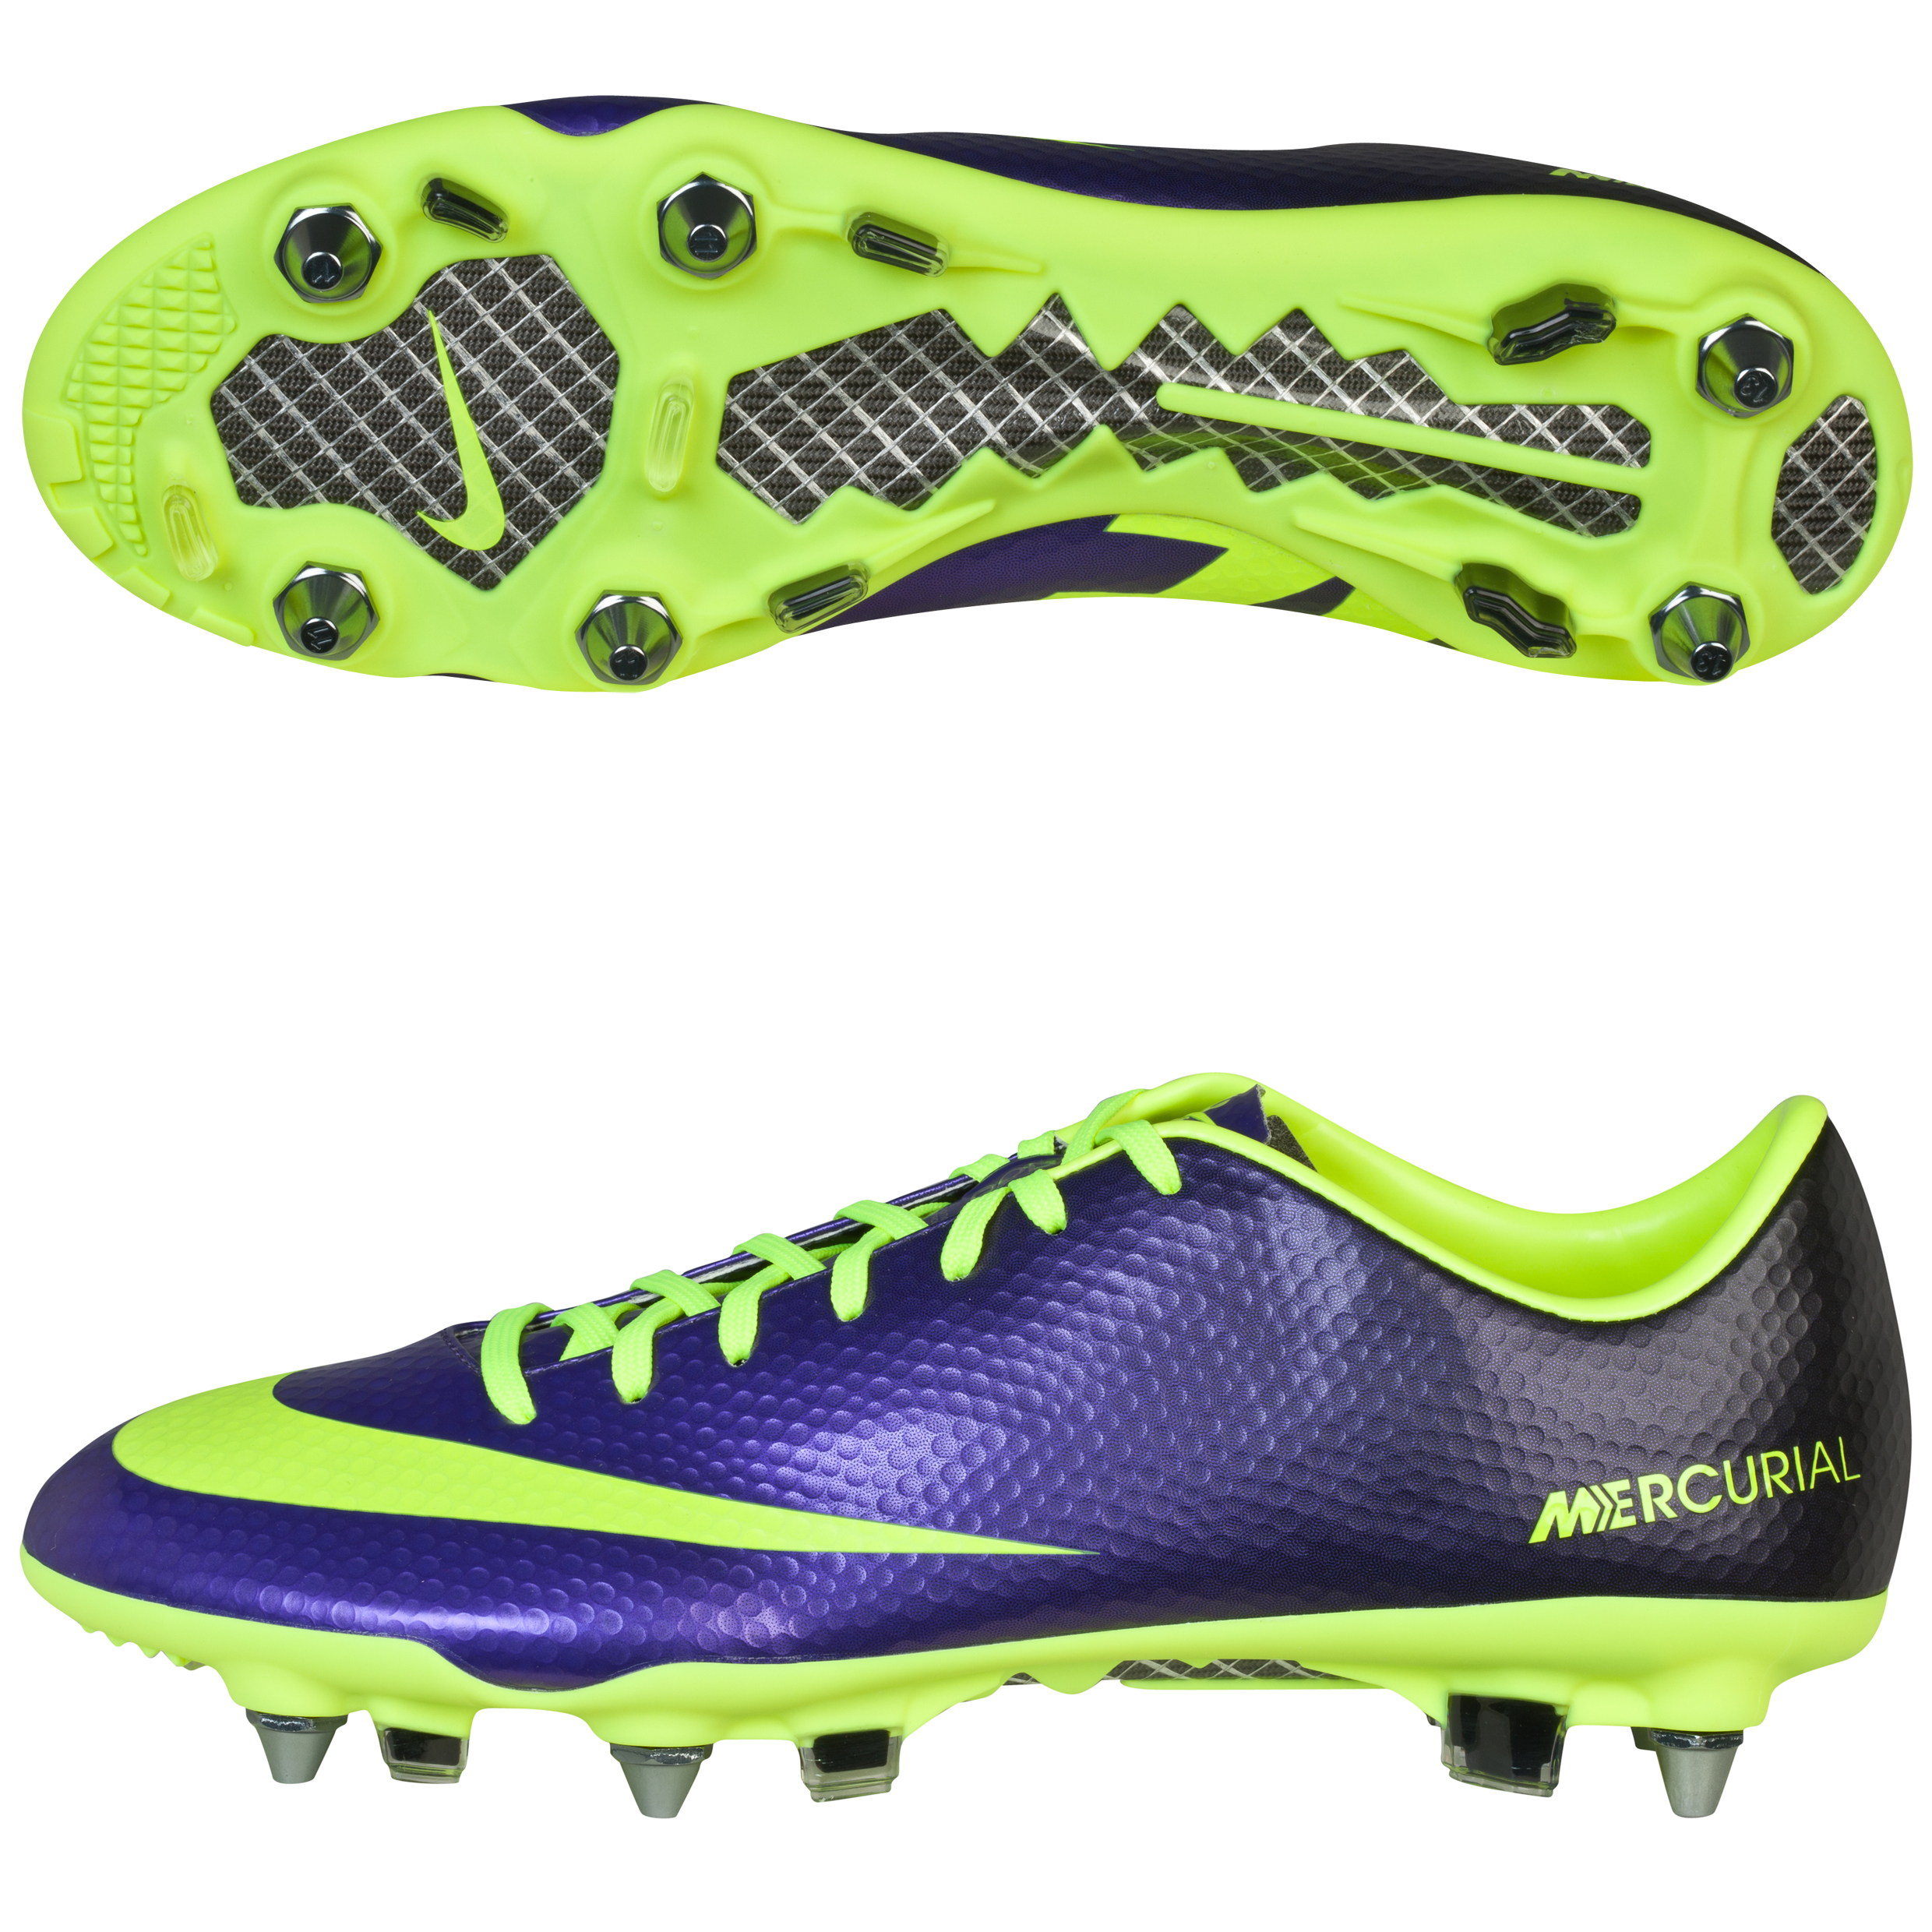 Nike Mercurial Vapor Ix Soft Ground Pro Football Boots - Electro Purple/Volt/Black Purple